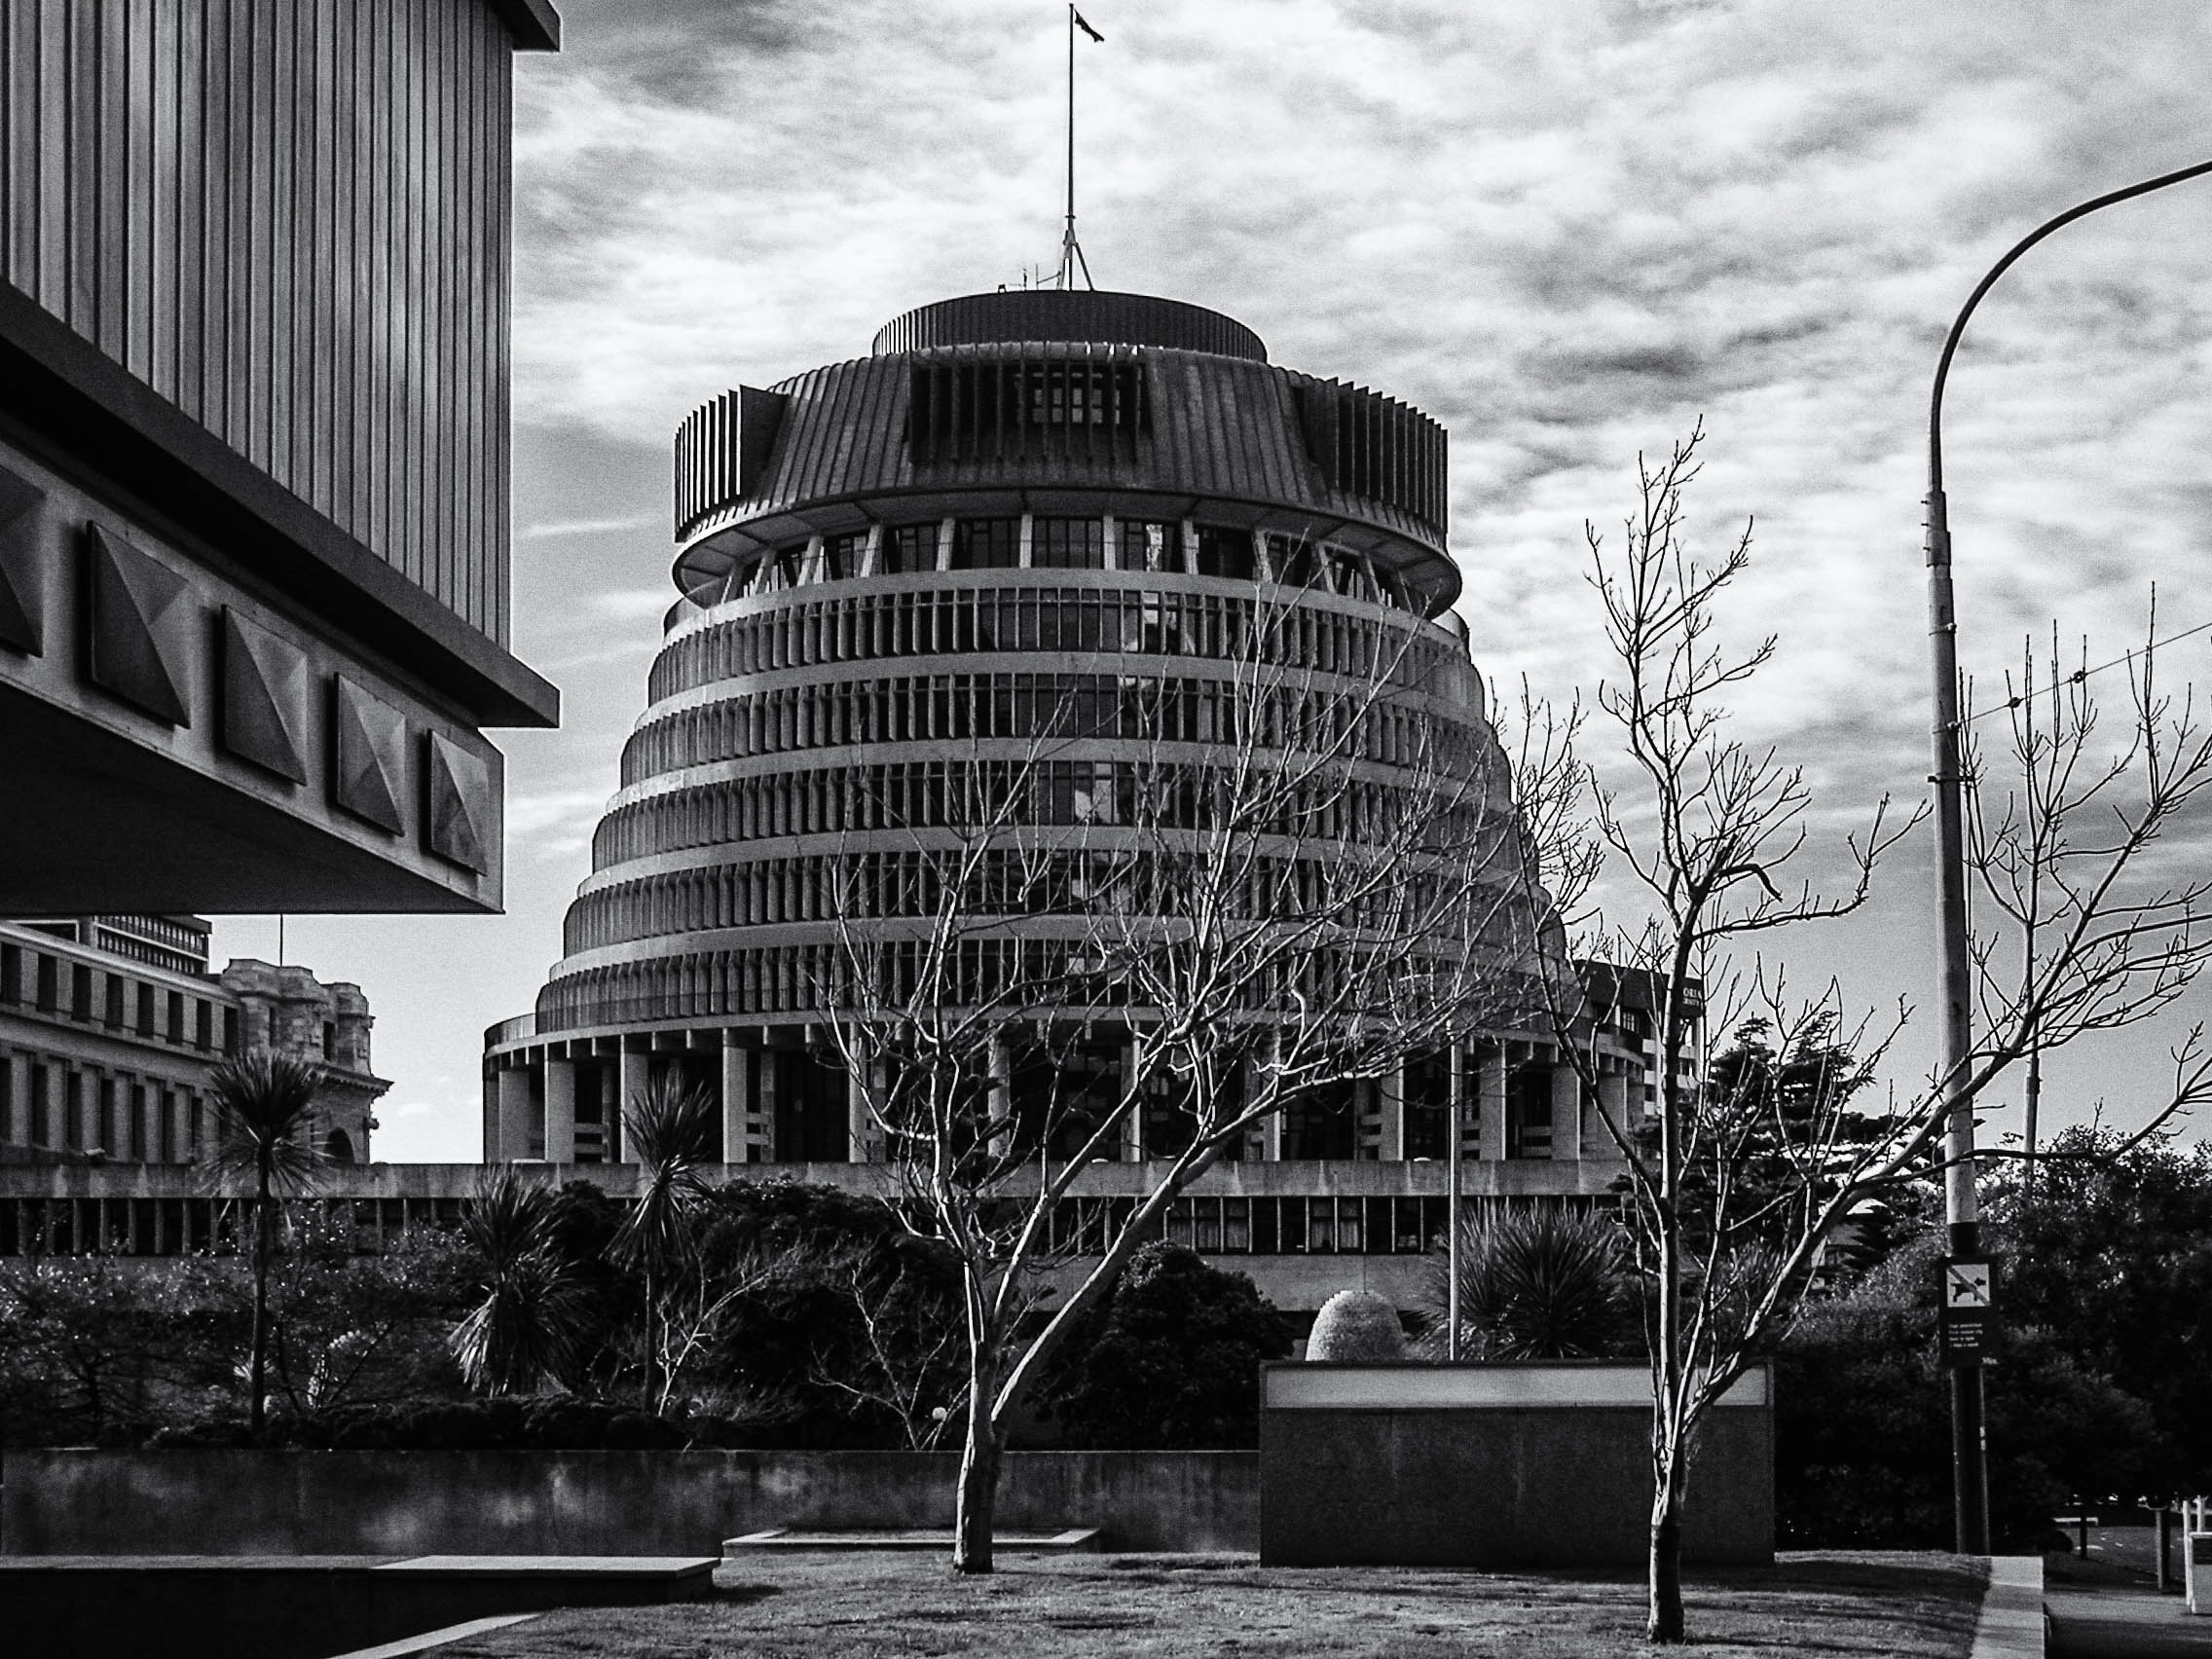 The Beehive - New Zealand Parliament